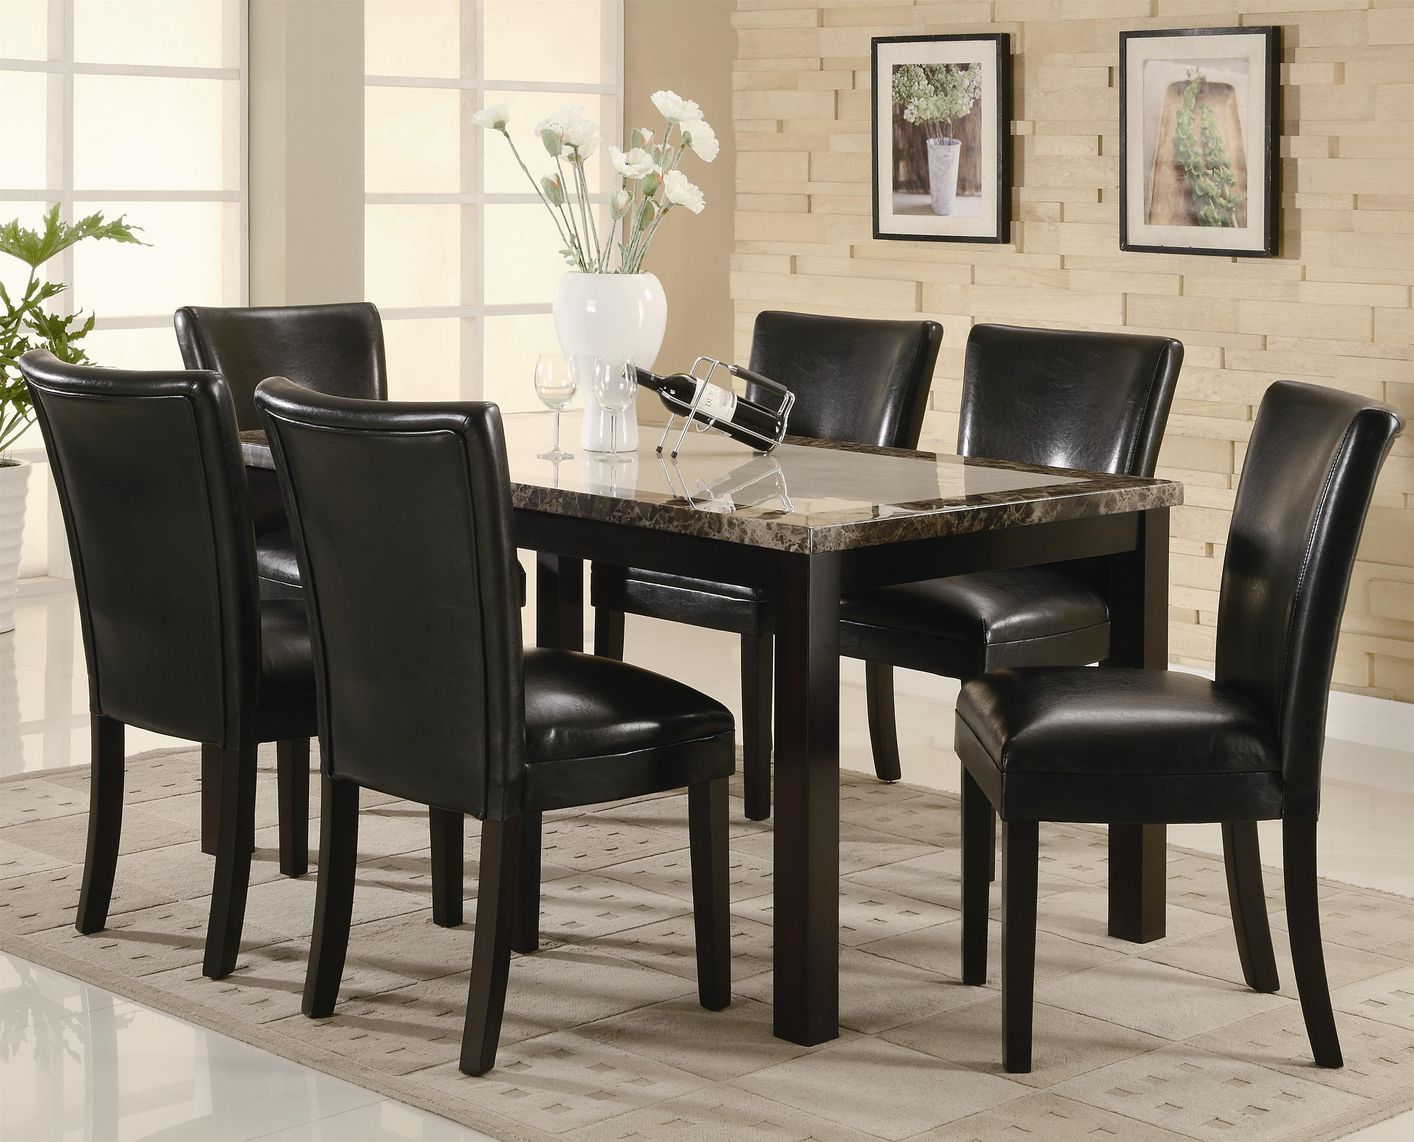 marble dining table set Carter Dark Brown Wood And Marble Dining Table Set   Steal A Sofa  marble dining table set